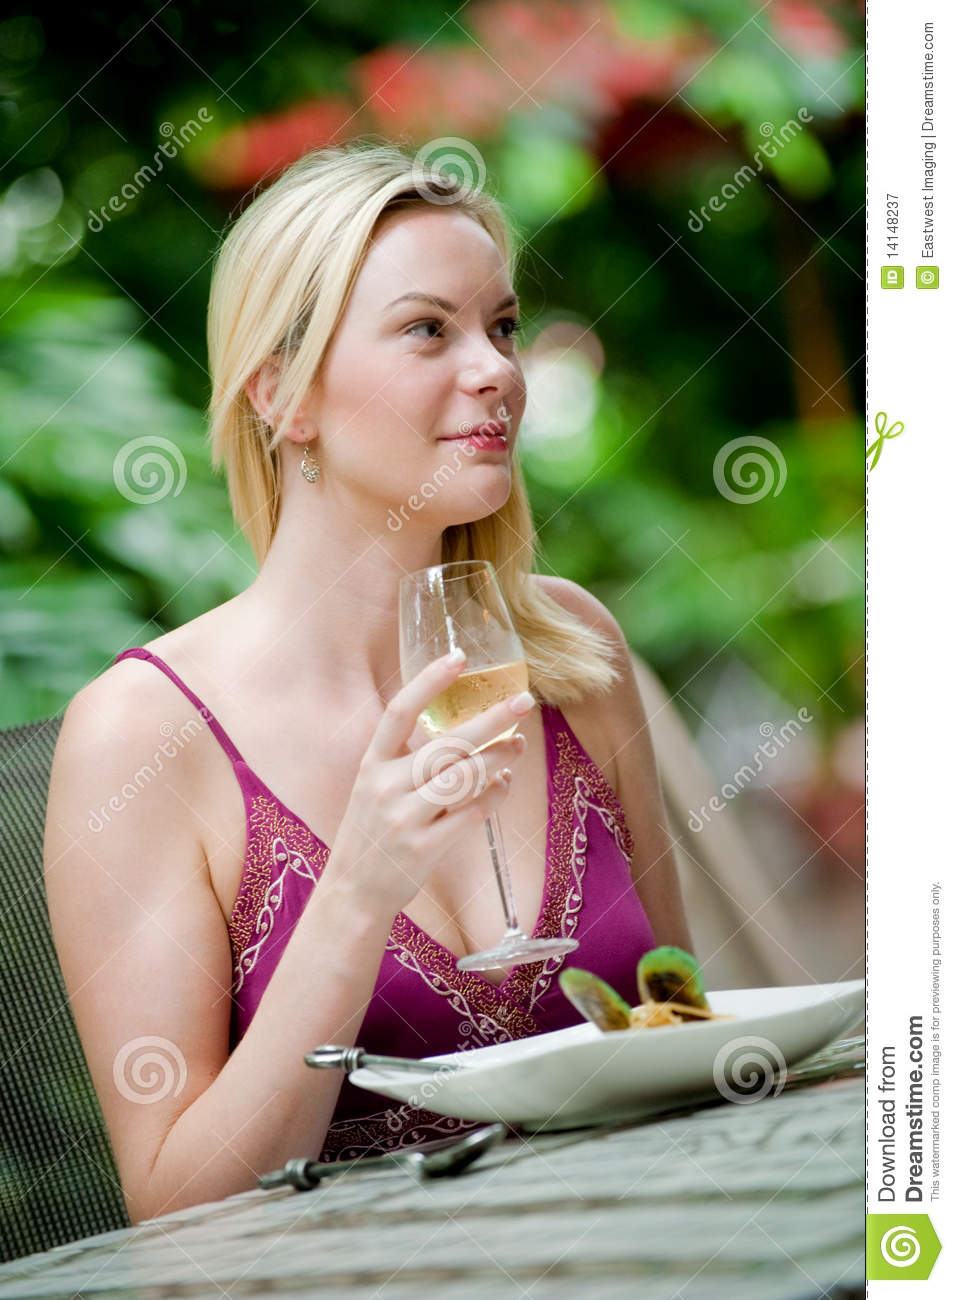 Outdoor meal royalty free stock photography image 14148237 for Meal outdoors